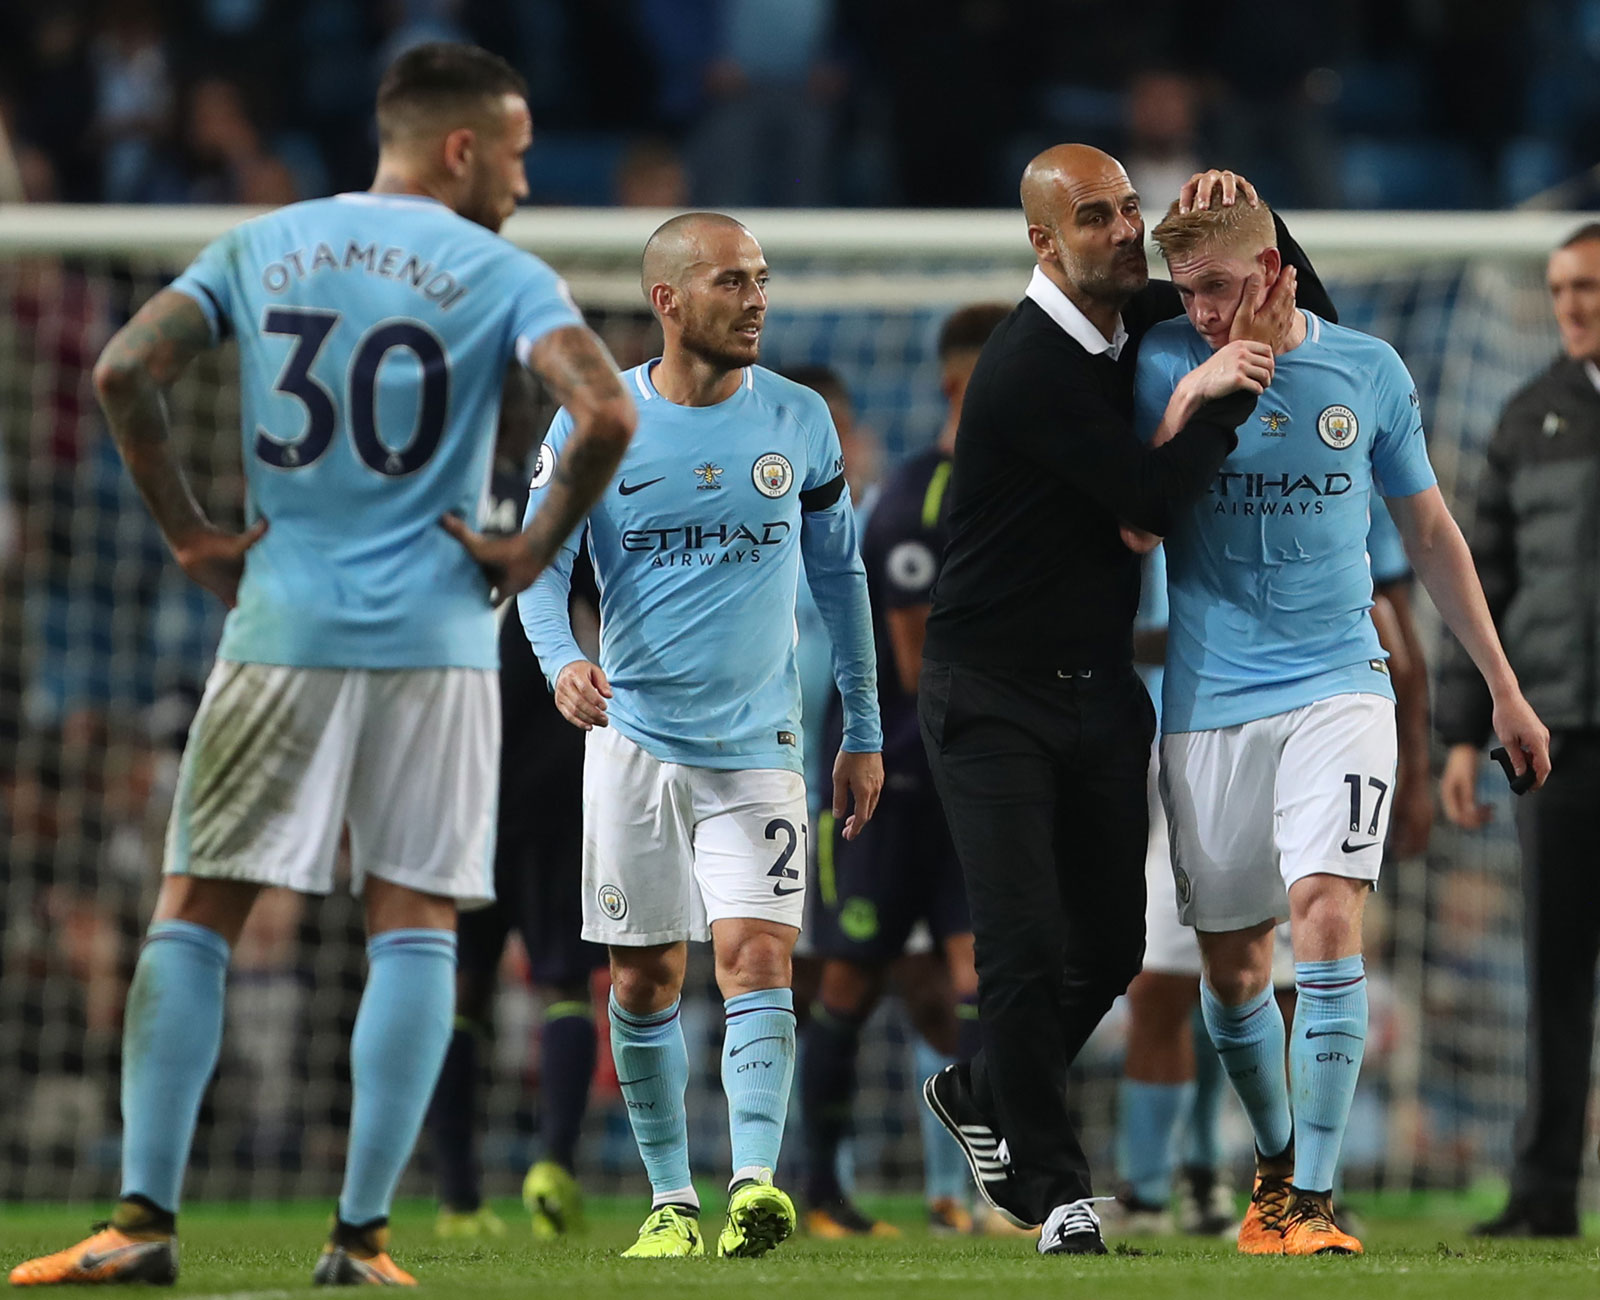 Man City v Burnley predictions: Premier League preview, line-ups & betting tips